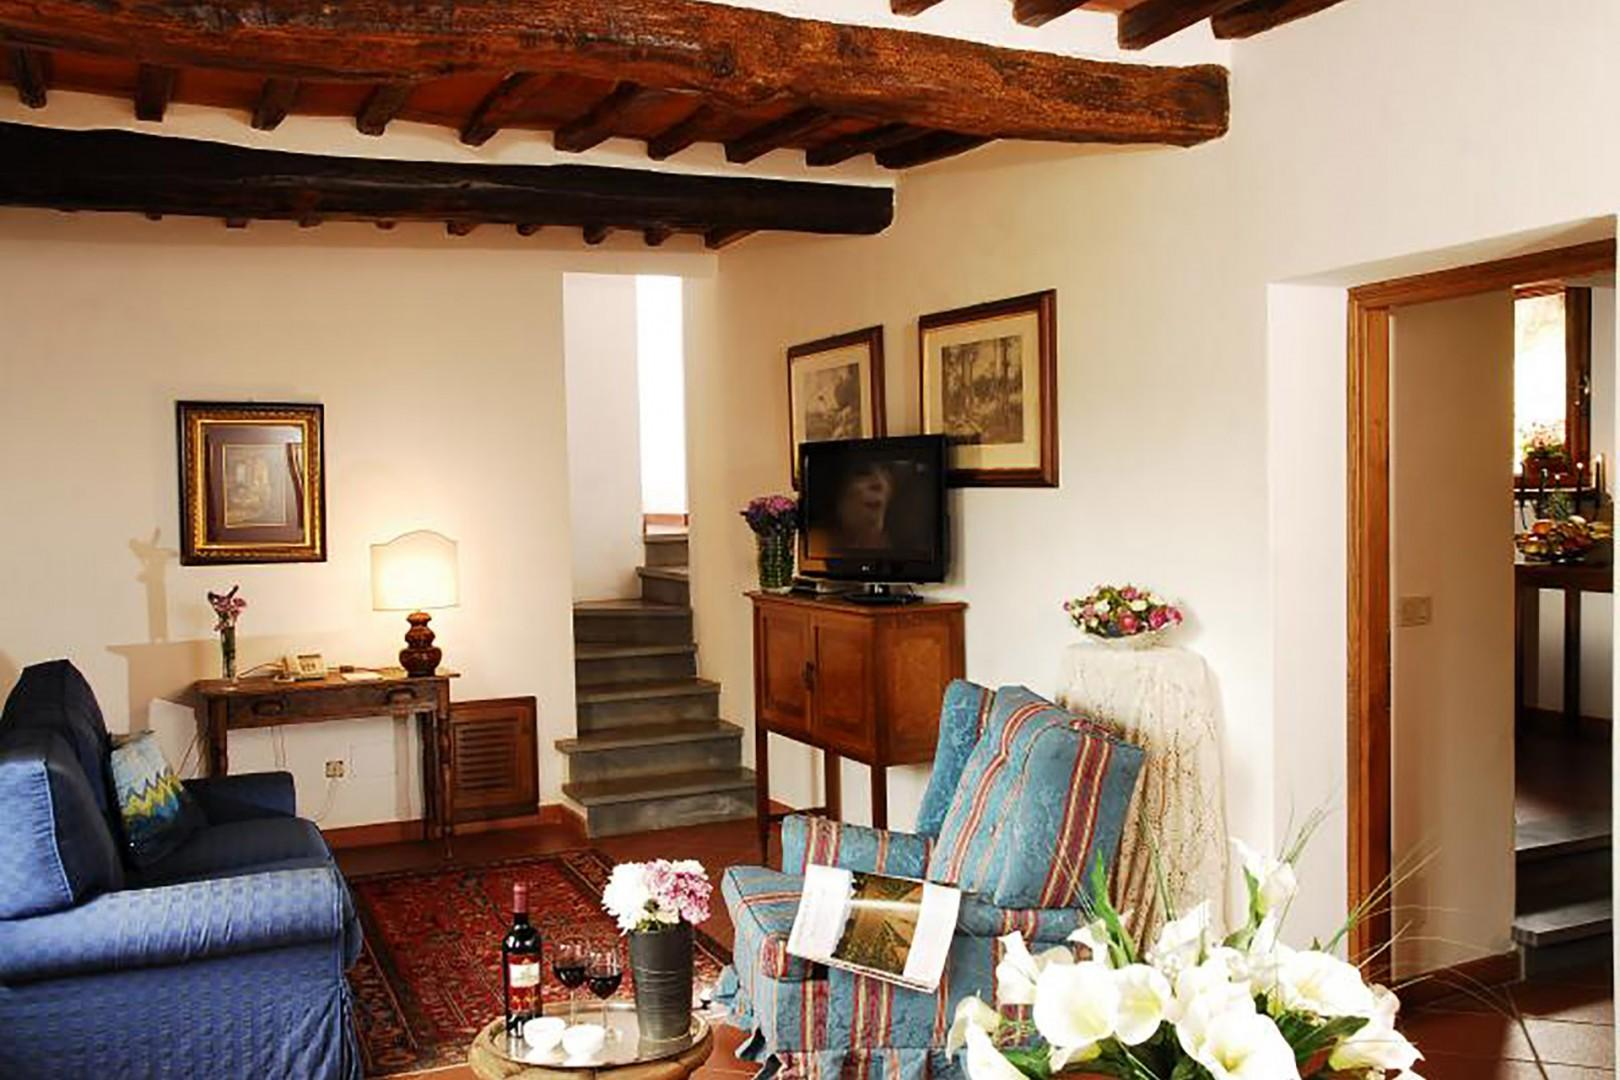 Living and dining room area of Bucine Cotogno.